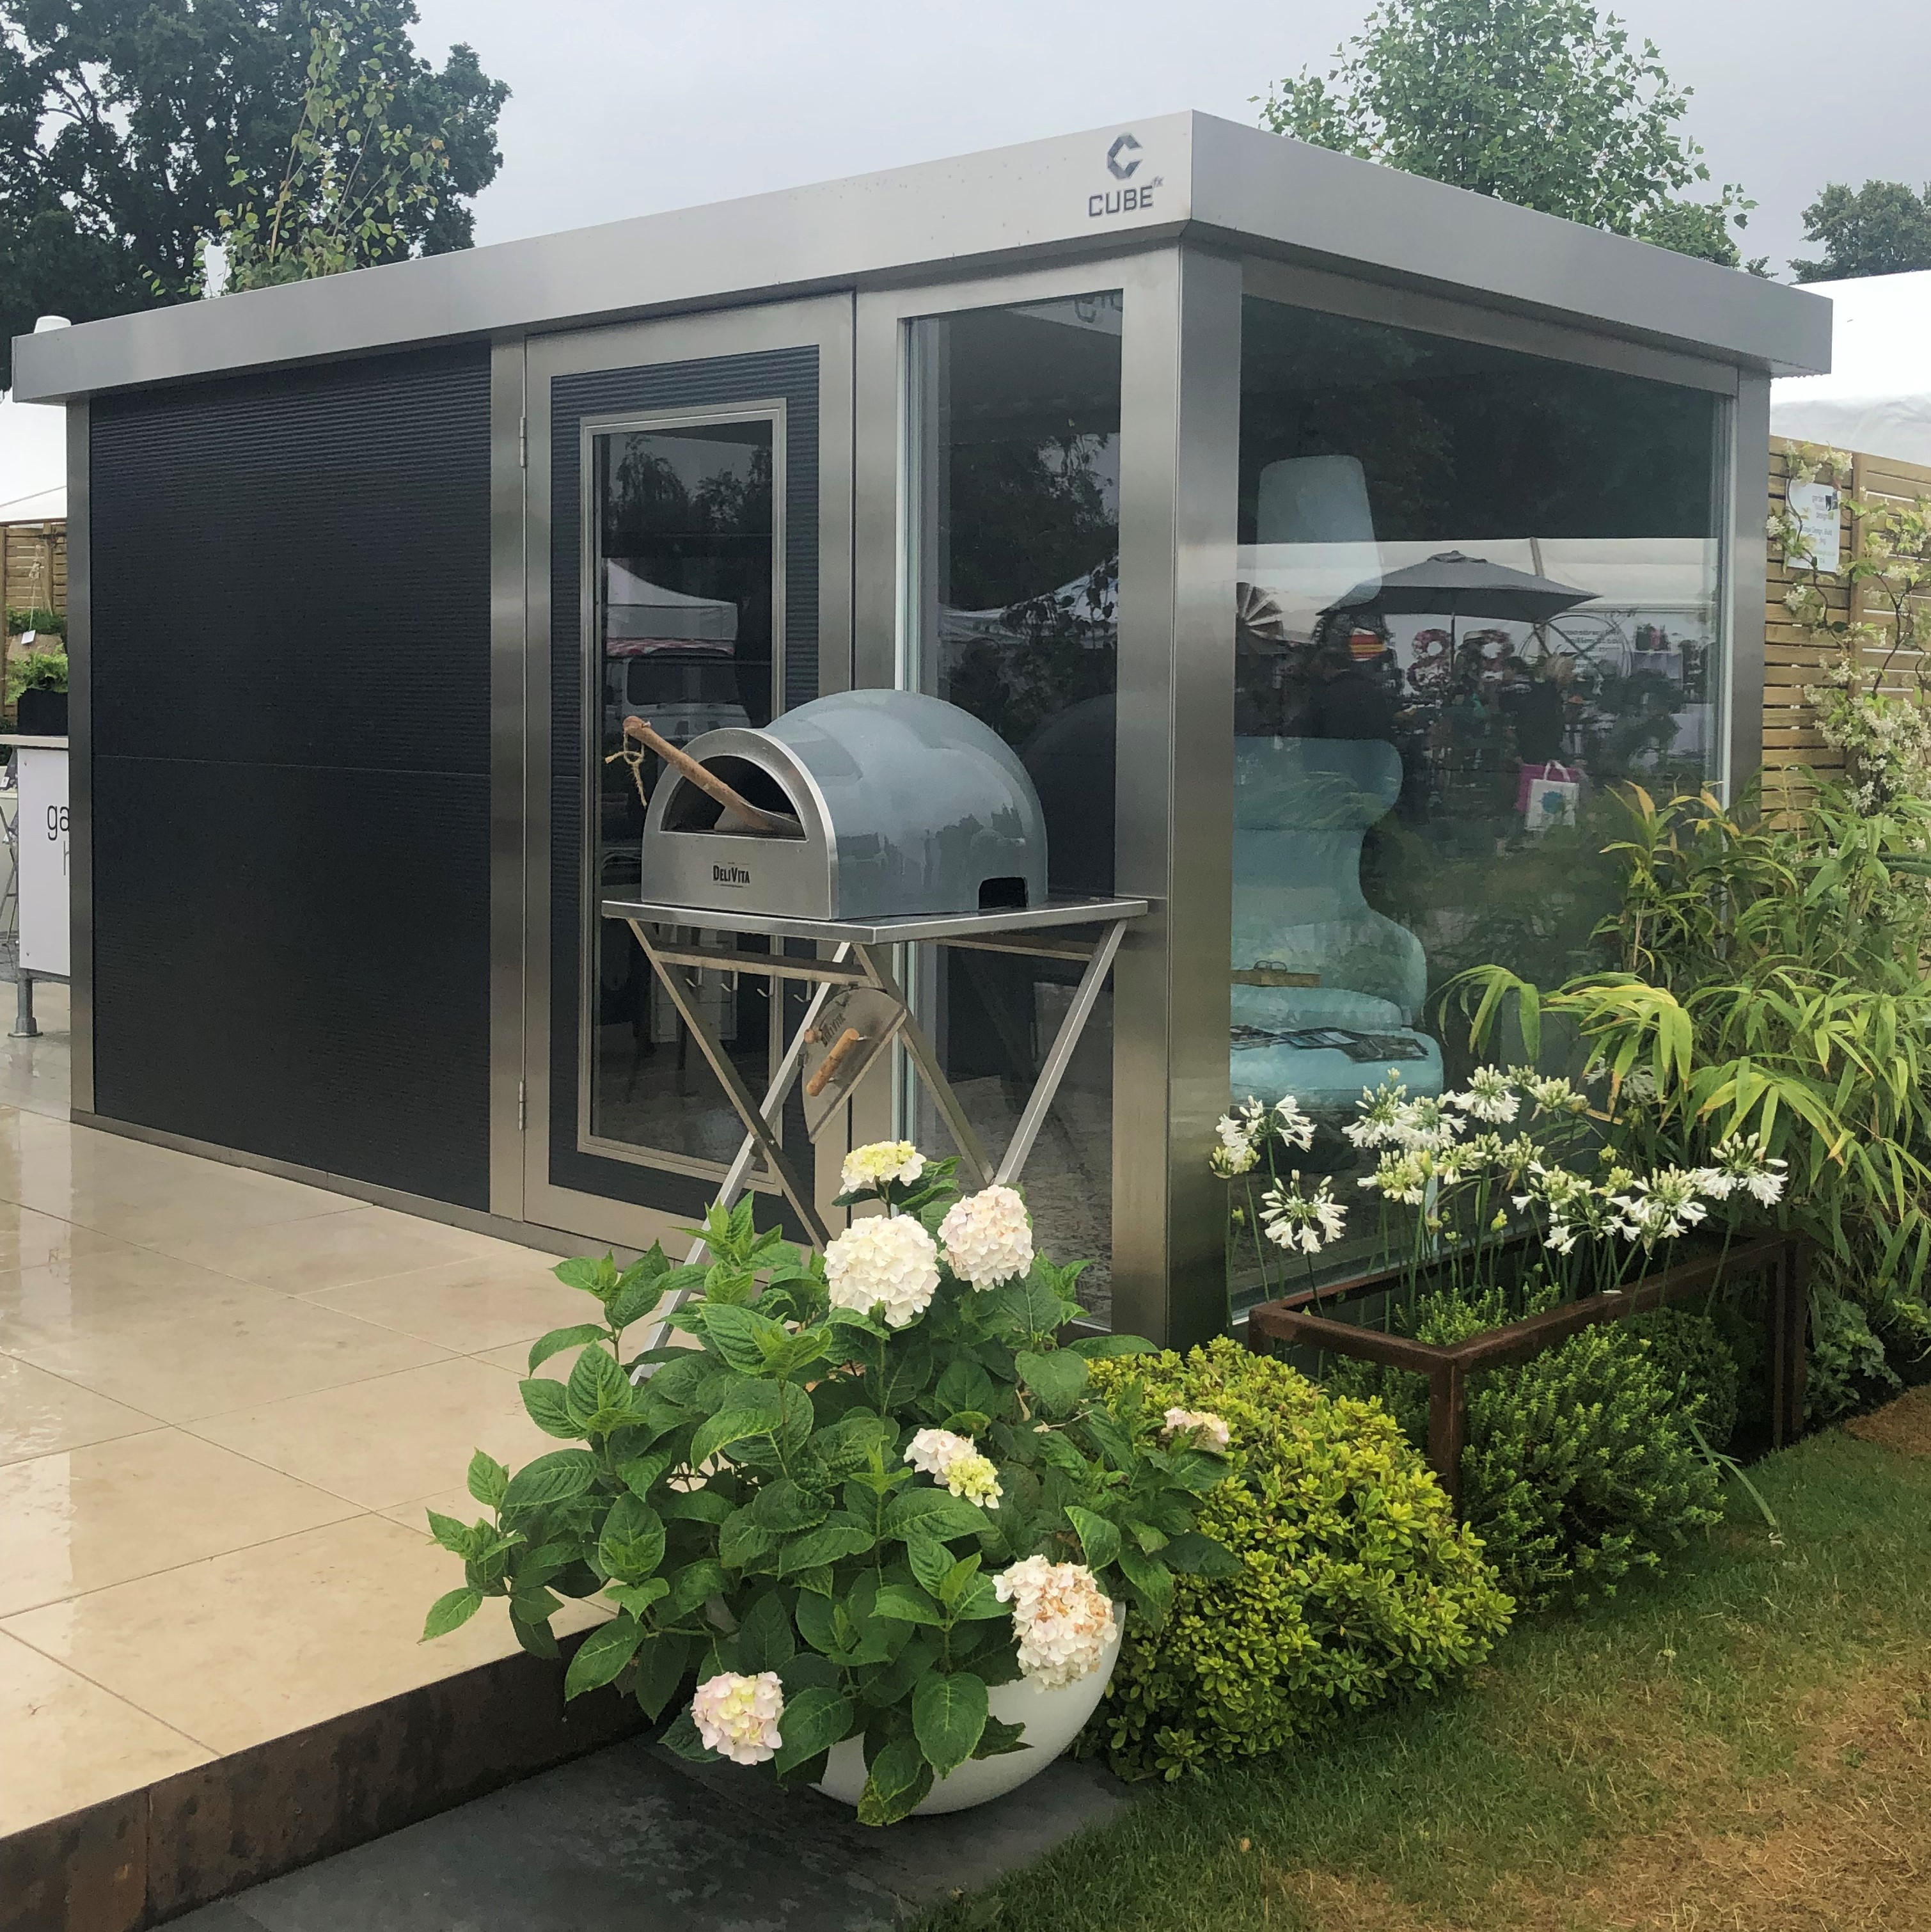 The CUBE-fx and the DeliVita Wood Fired Oven at Hampton Court Flower Show Exhibition Trade Stand 2019